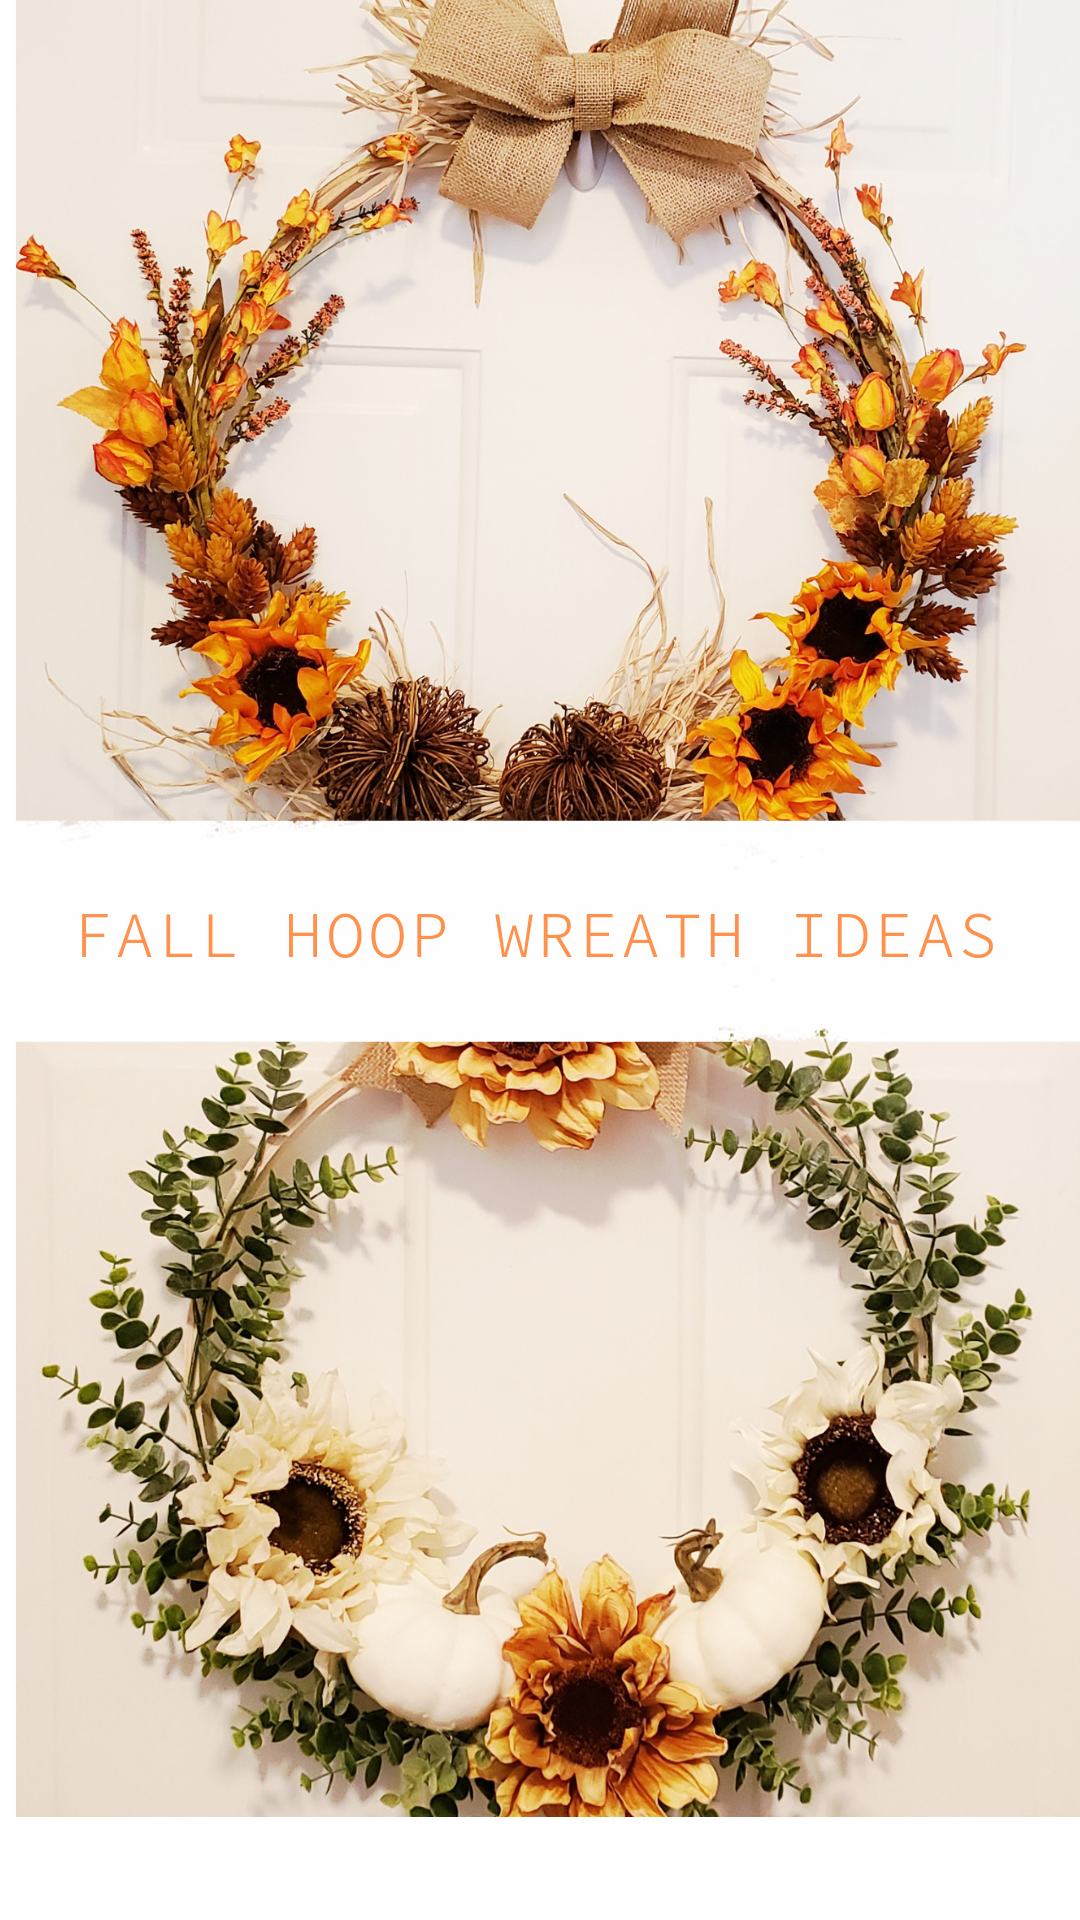 Fall Hoop Wreath Ideas Crafts Decor And Family